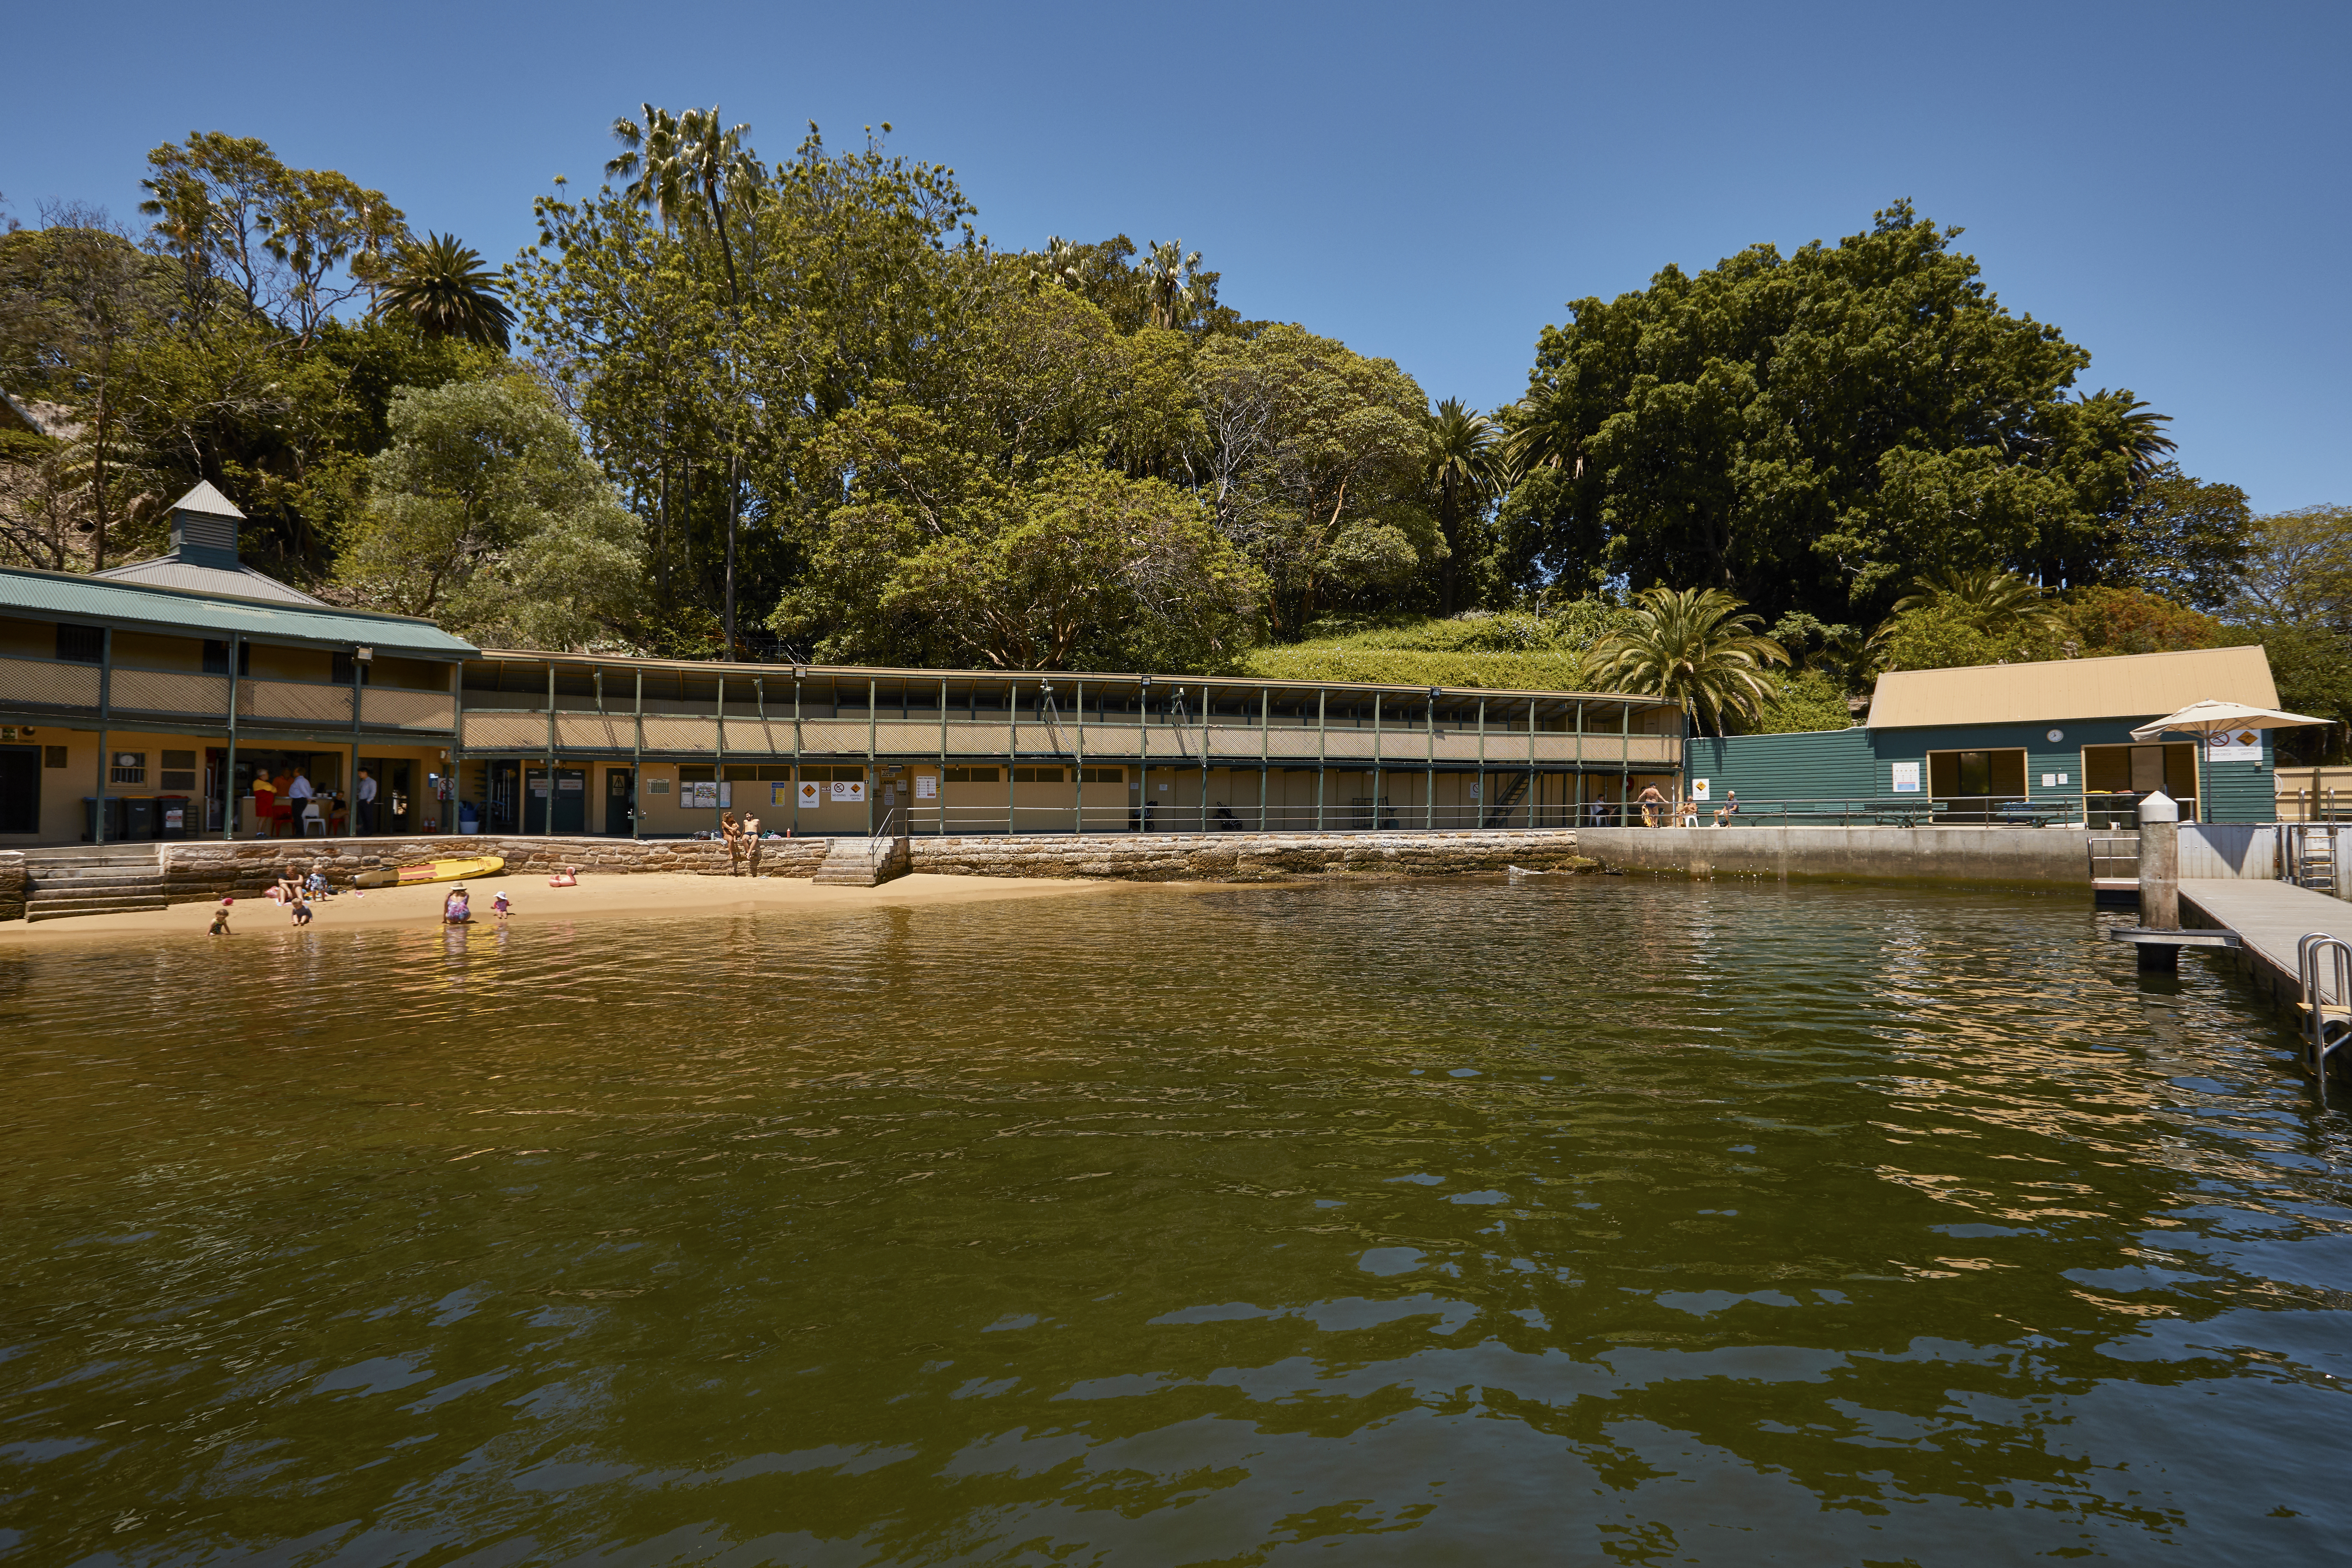 Looking across Dawn Fraser Baths with families padding at the water's edge on a sunny day.